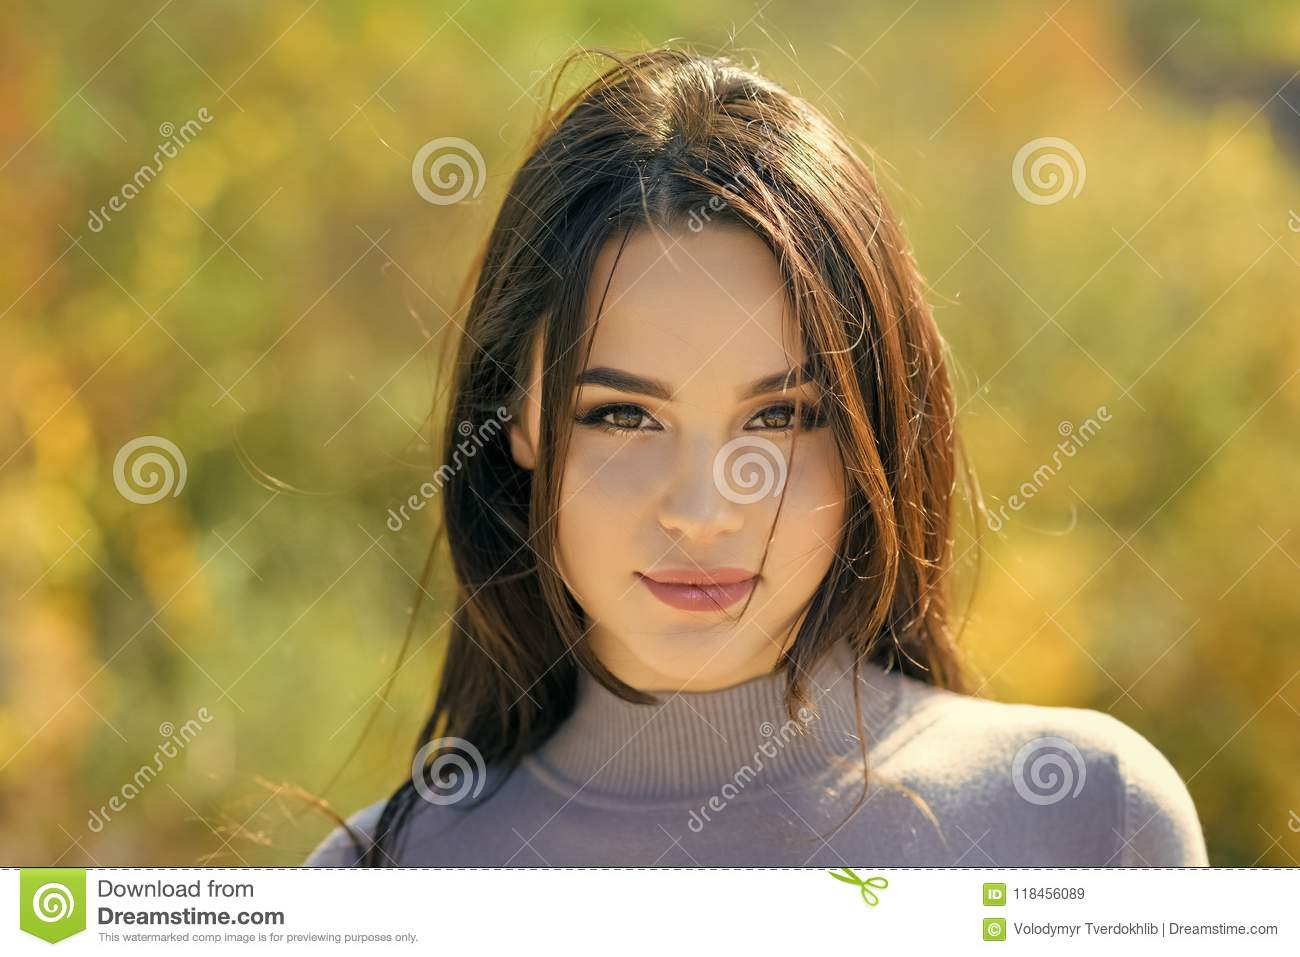 Skincare, youth, health. Energy, joy, serenity. Woman with long brunette hair. Girl with makeup face smiling on sunny